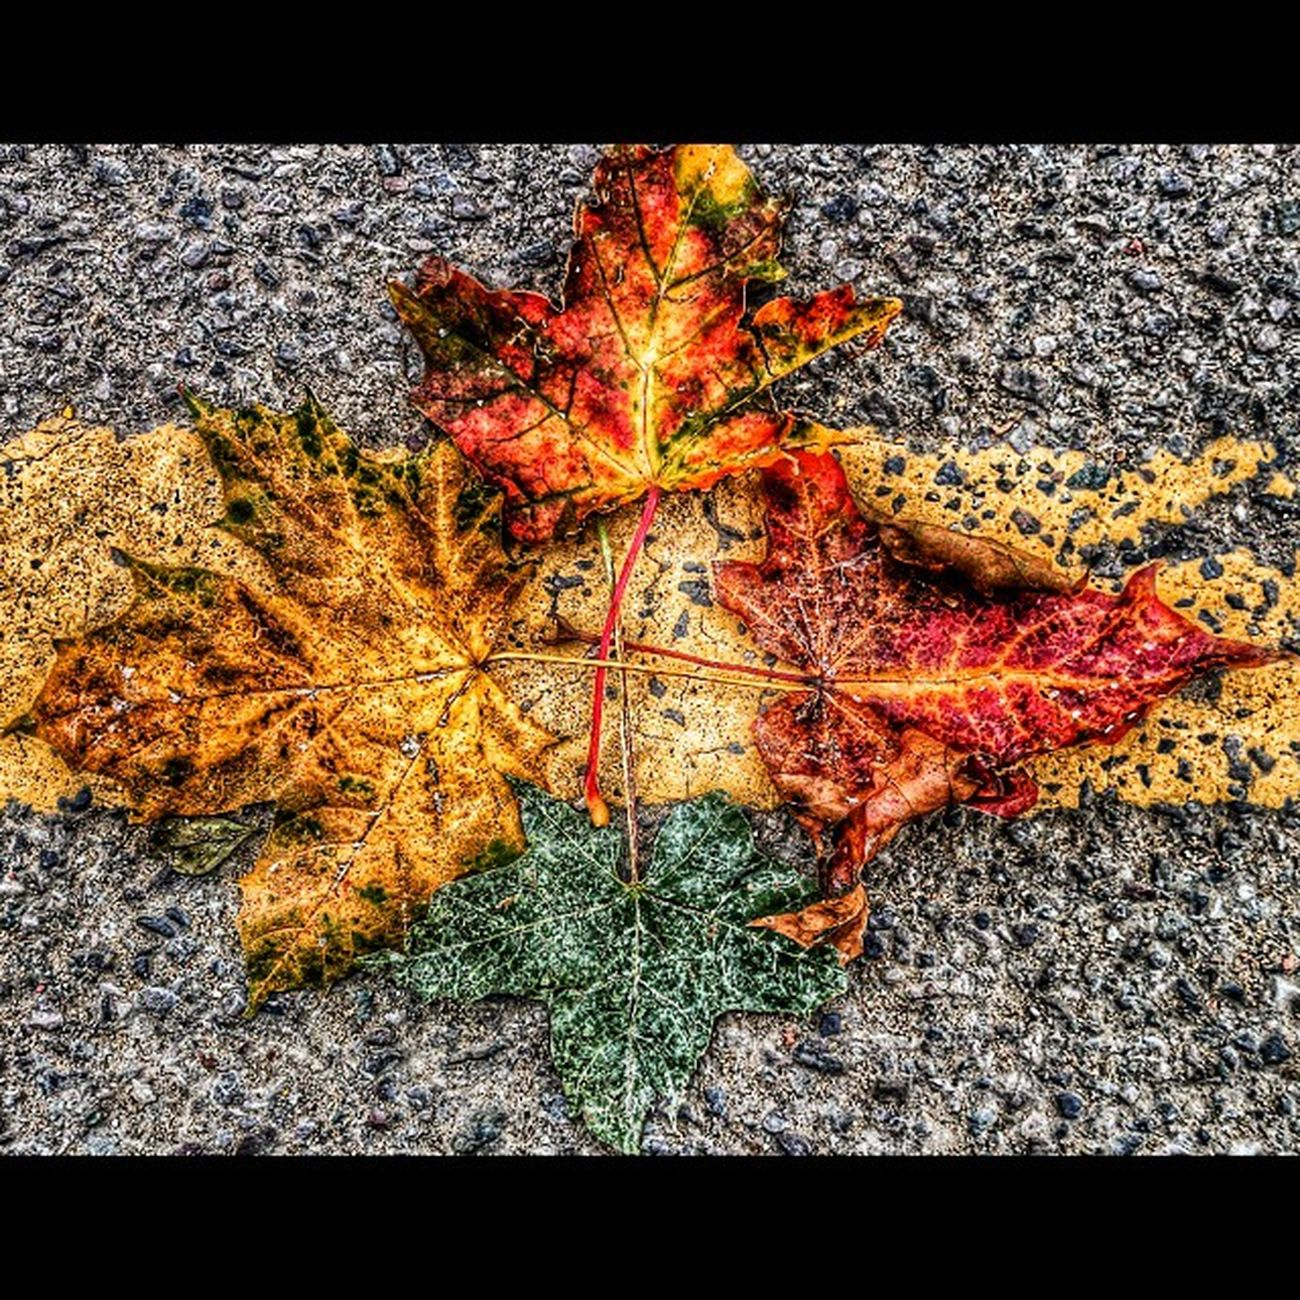 Leaves on the ground!! Leaves Fall Autumn Fourleaves natureamazingcoloursdetaildecaylovecutecreativity